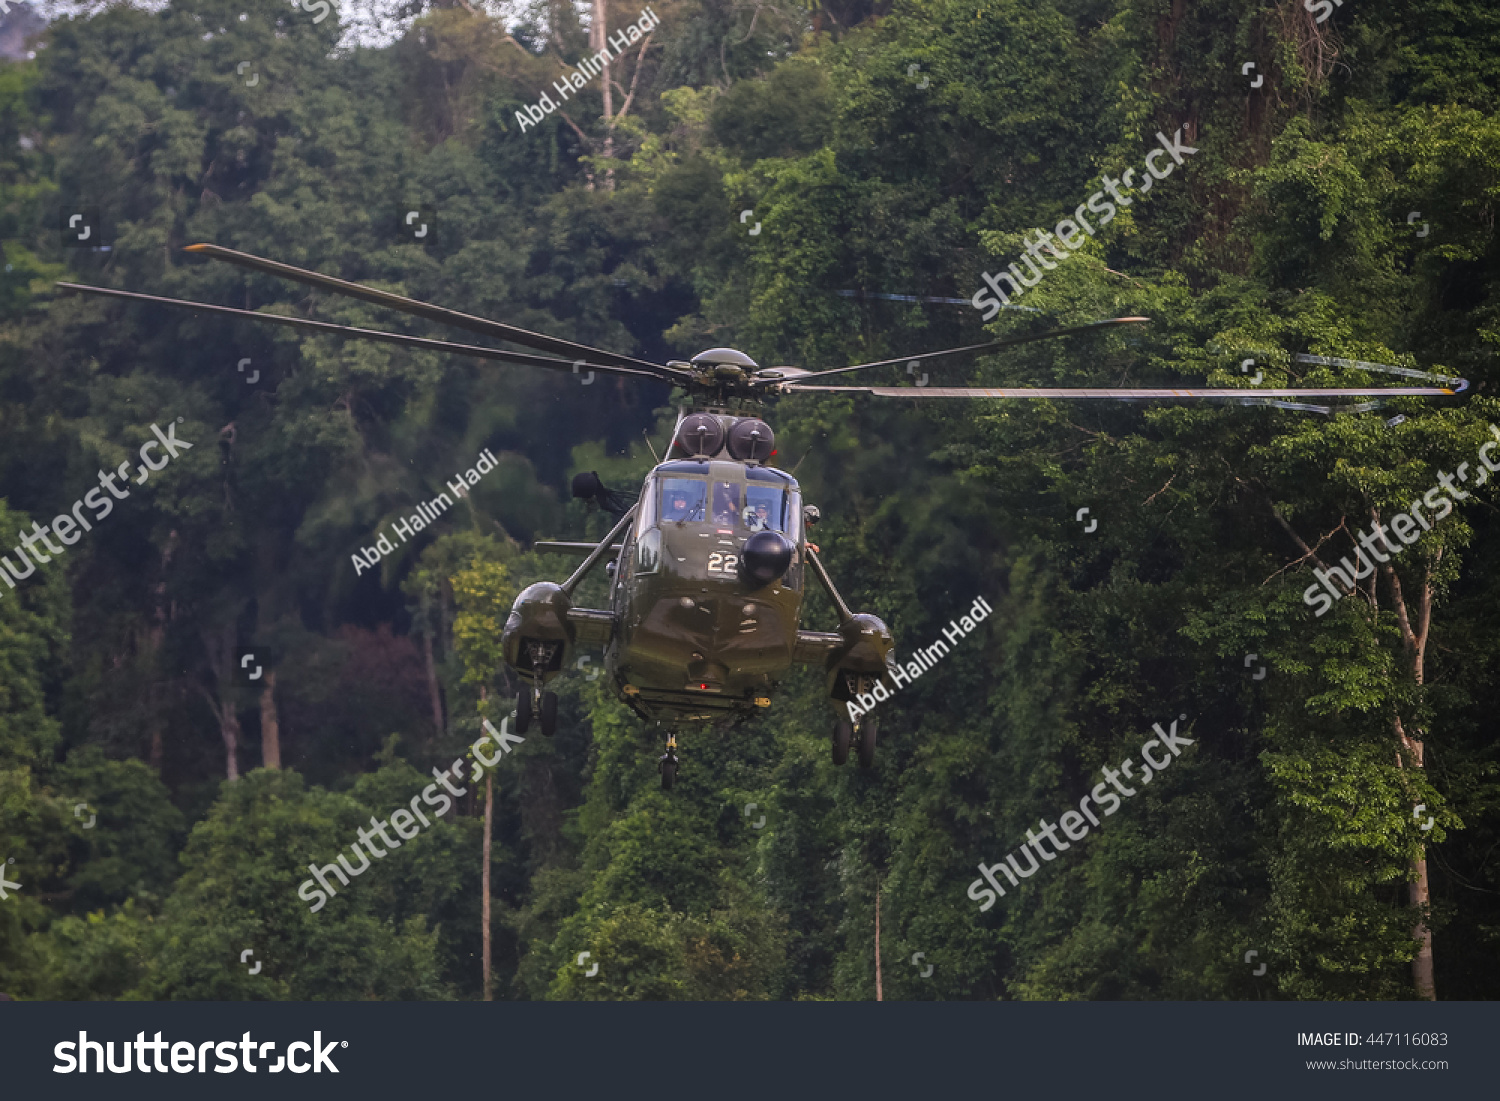 helicopter nuri with Perak Malaysia 2 June 2016 Sikorsky 447116083 on Perak Malaysia 2 June 2016 Sikorsky 447116083 further Supersonic Particle Deposition As Potential Corrosion Treatment Method For Helicopter Part In Malaysia moreover Tudm Sikorsky S 614a Nuri in addition Iraqi Helicopter Shot Down In Clash With Militants Officials Say further Barzani abdden apache helikopter aliyor 1092203.